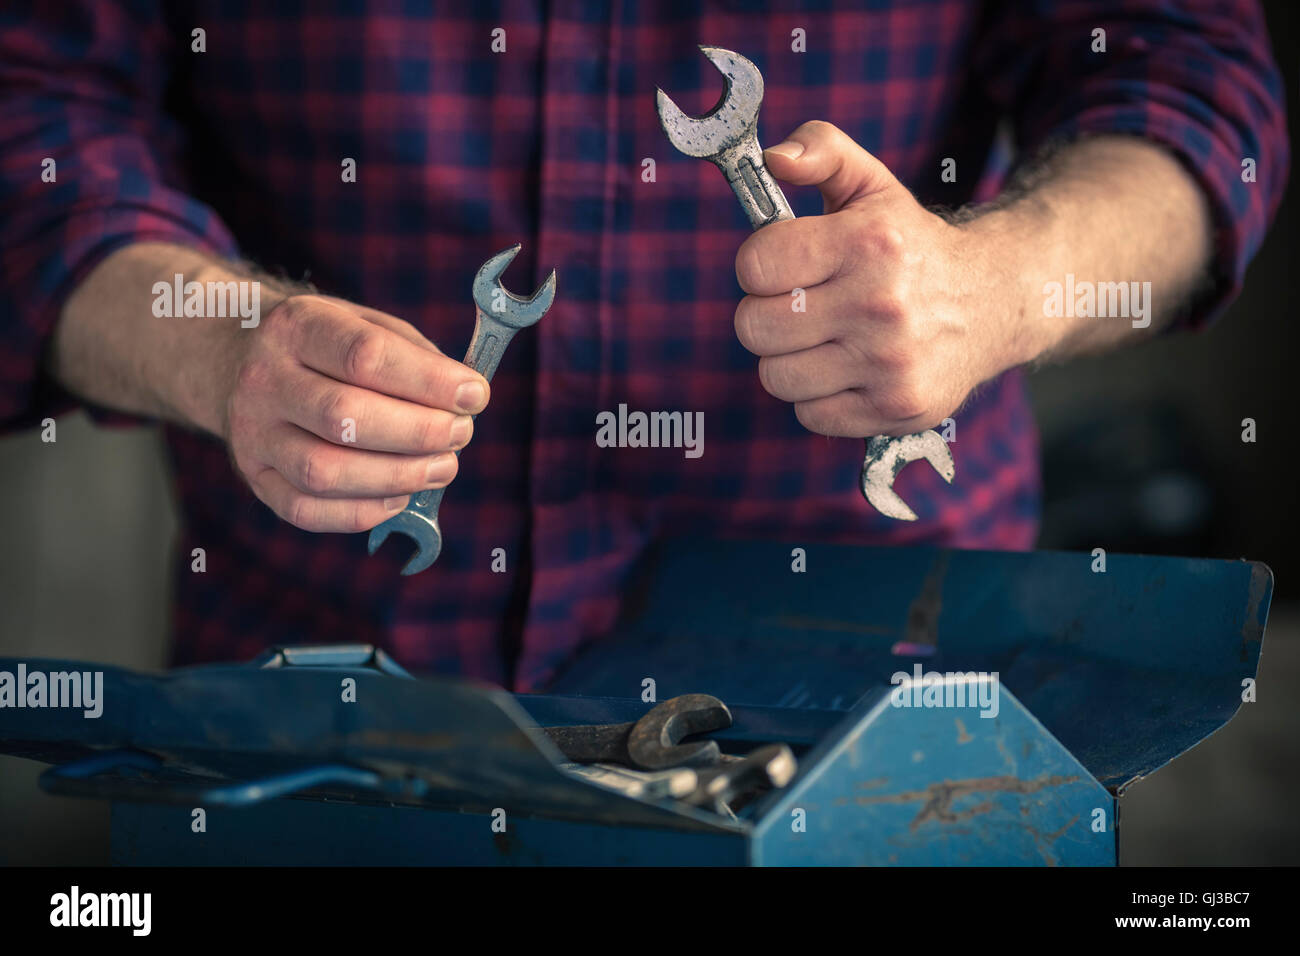 Man holding different sized spanners - Stock Image